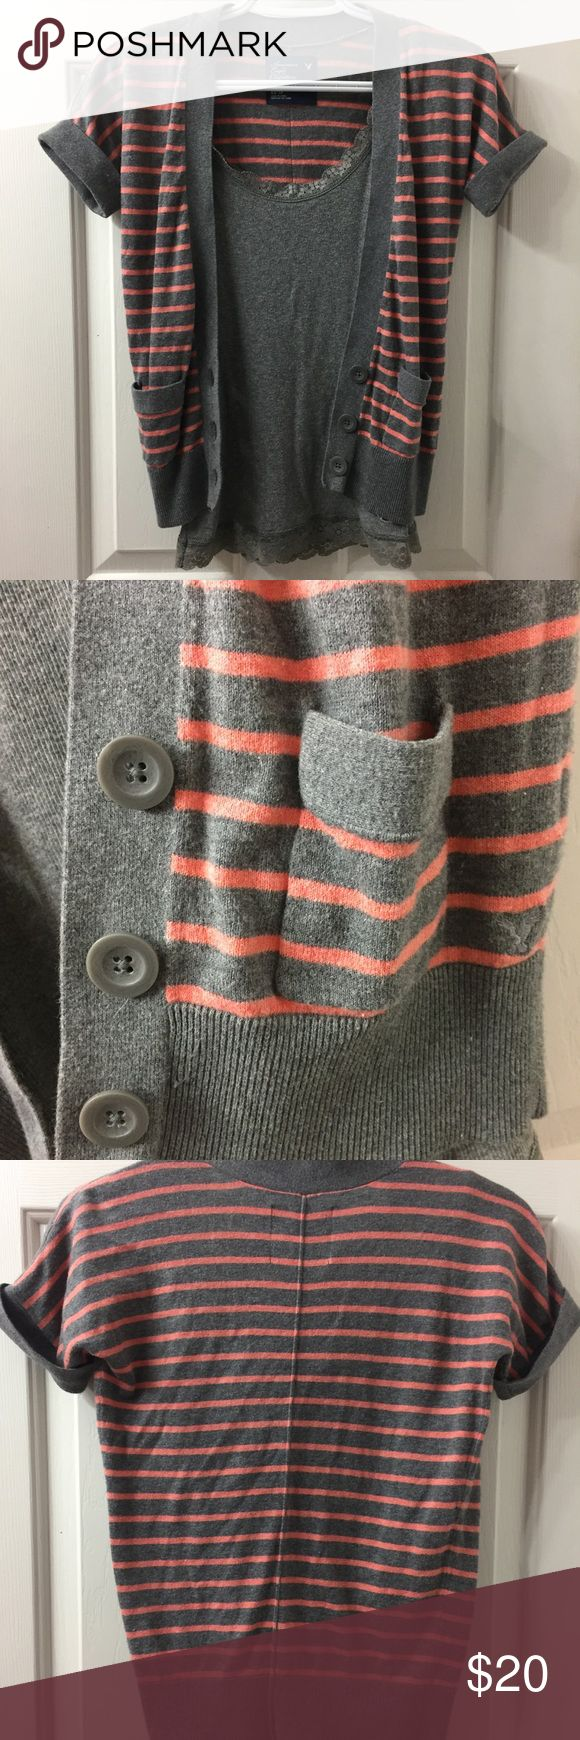 Gray and Salmon striped short sleeve Cardigan American Eagle cardigan. Perfect to layer over tops and tanks. A good neutral color that can easily transition from summer to fall. Tank in picture is not included but can negotiate a bundle. It is also an XS from Hollister. American Eagle Outfitters Sweaters Cardigans